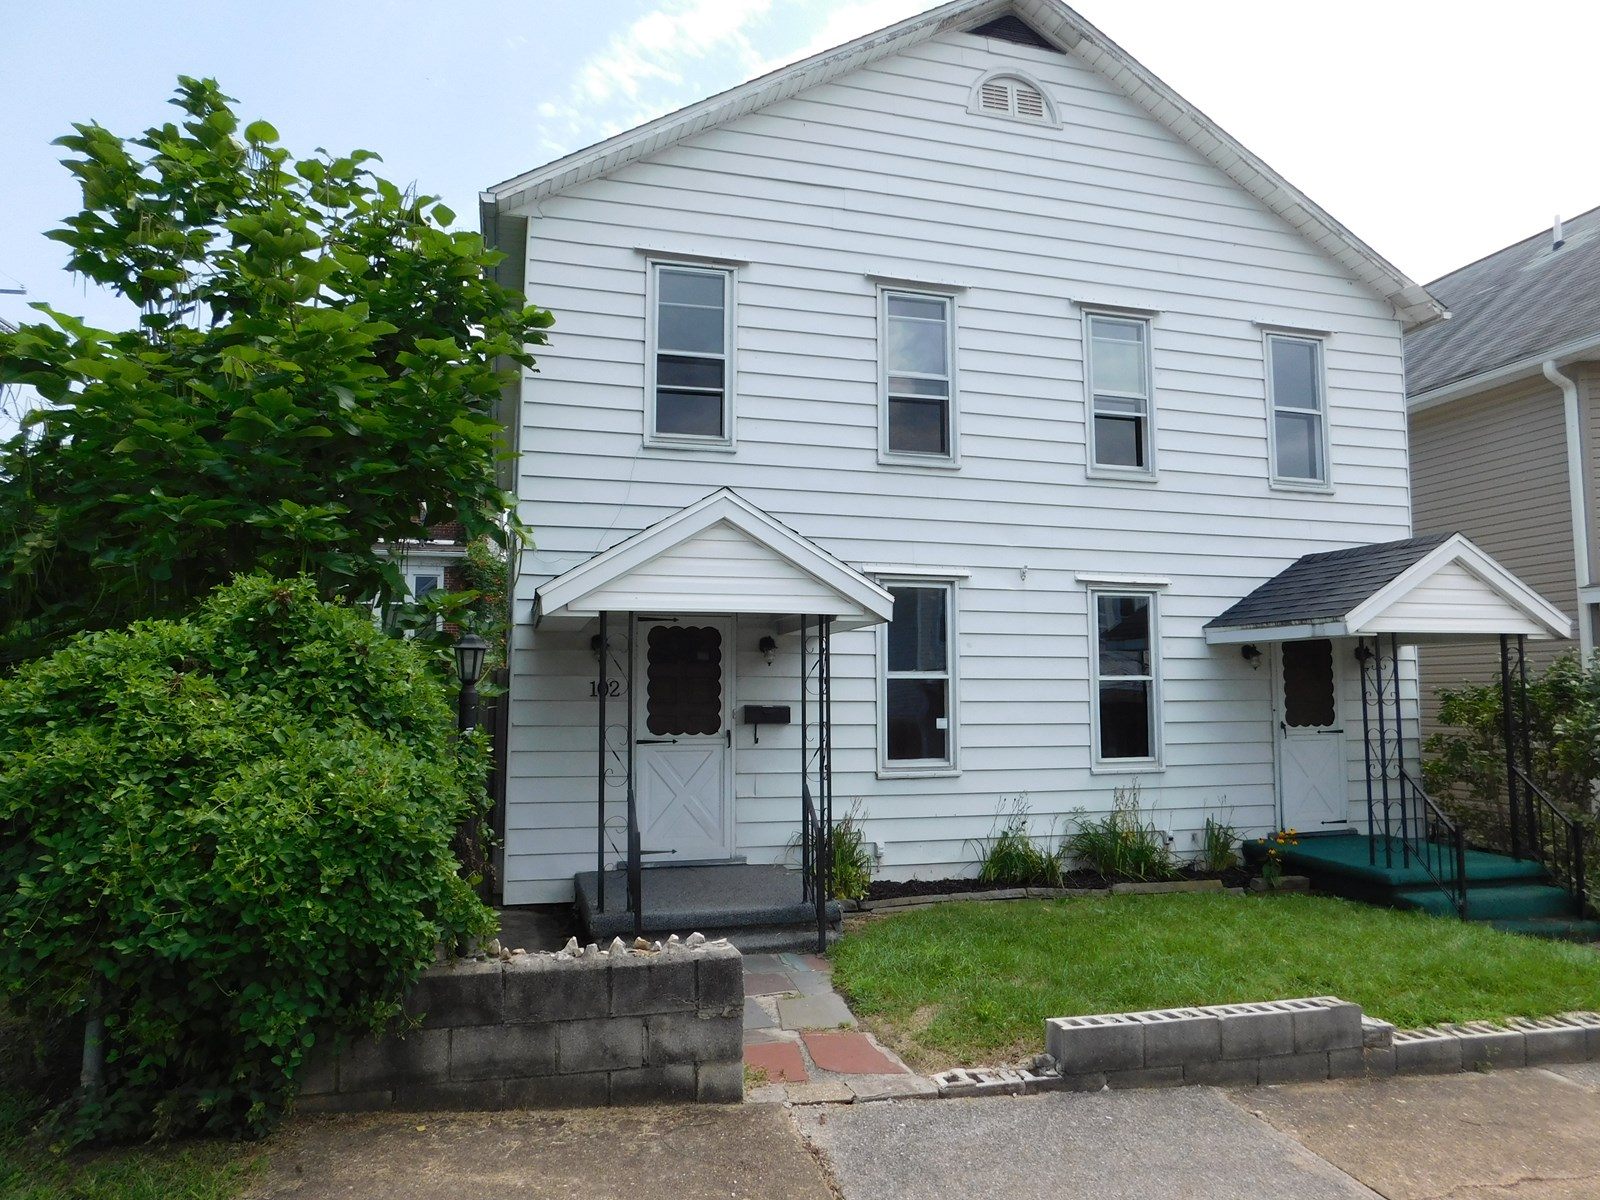 Large Single Family Home, Cumberland MD